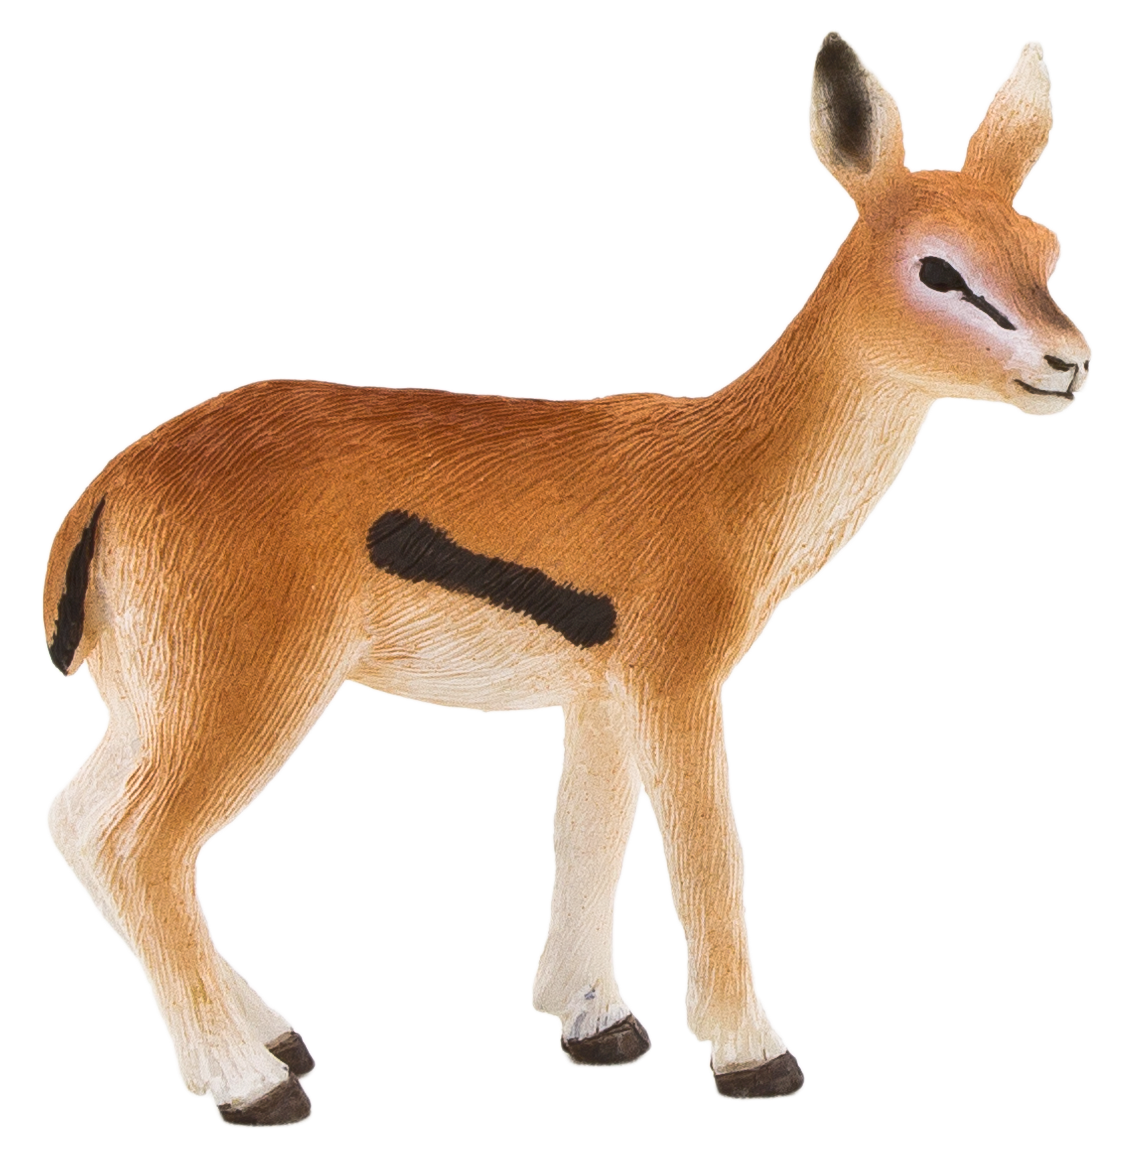 Gazelle Transparent Background PNG Image